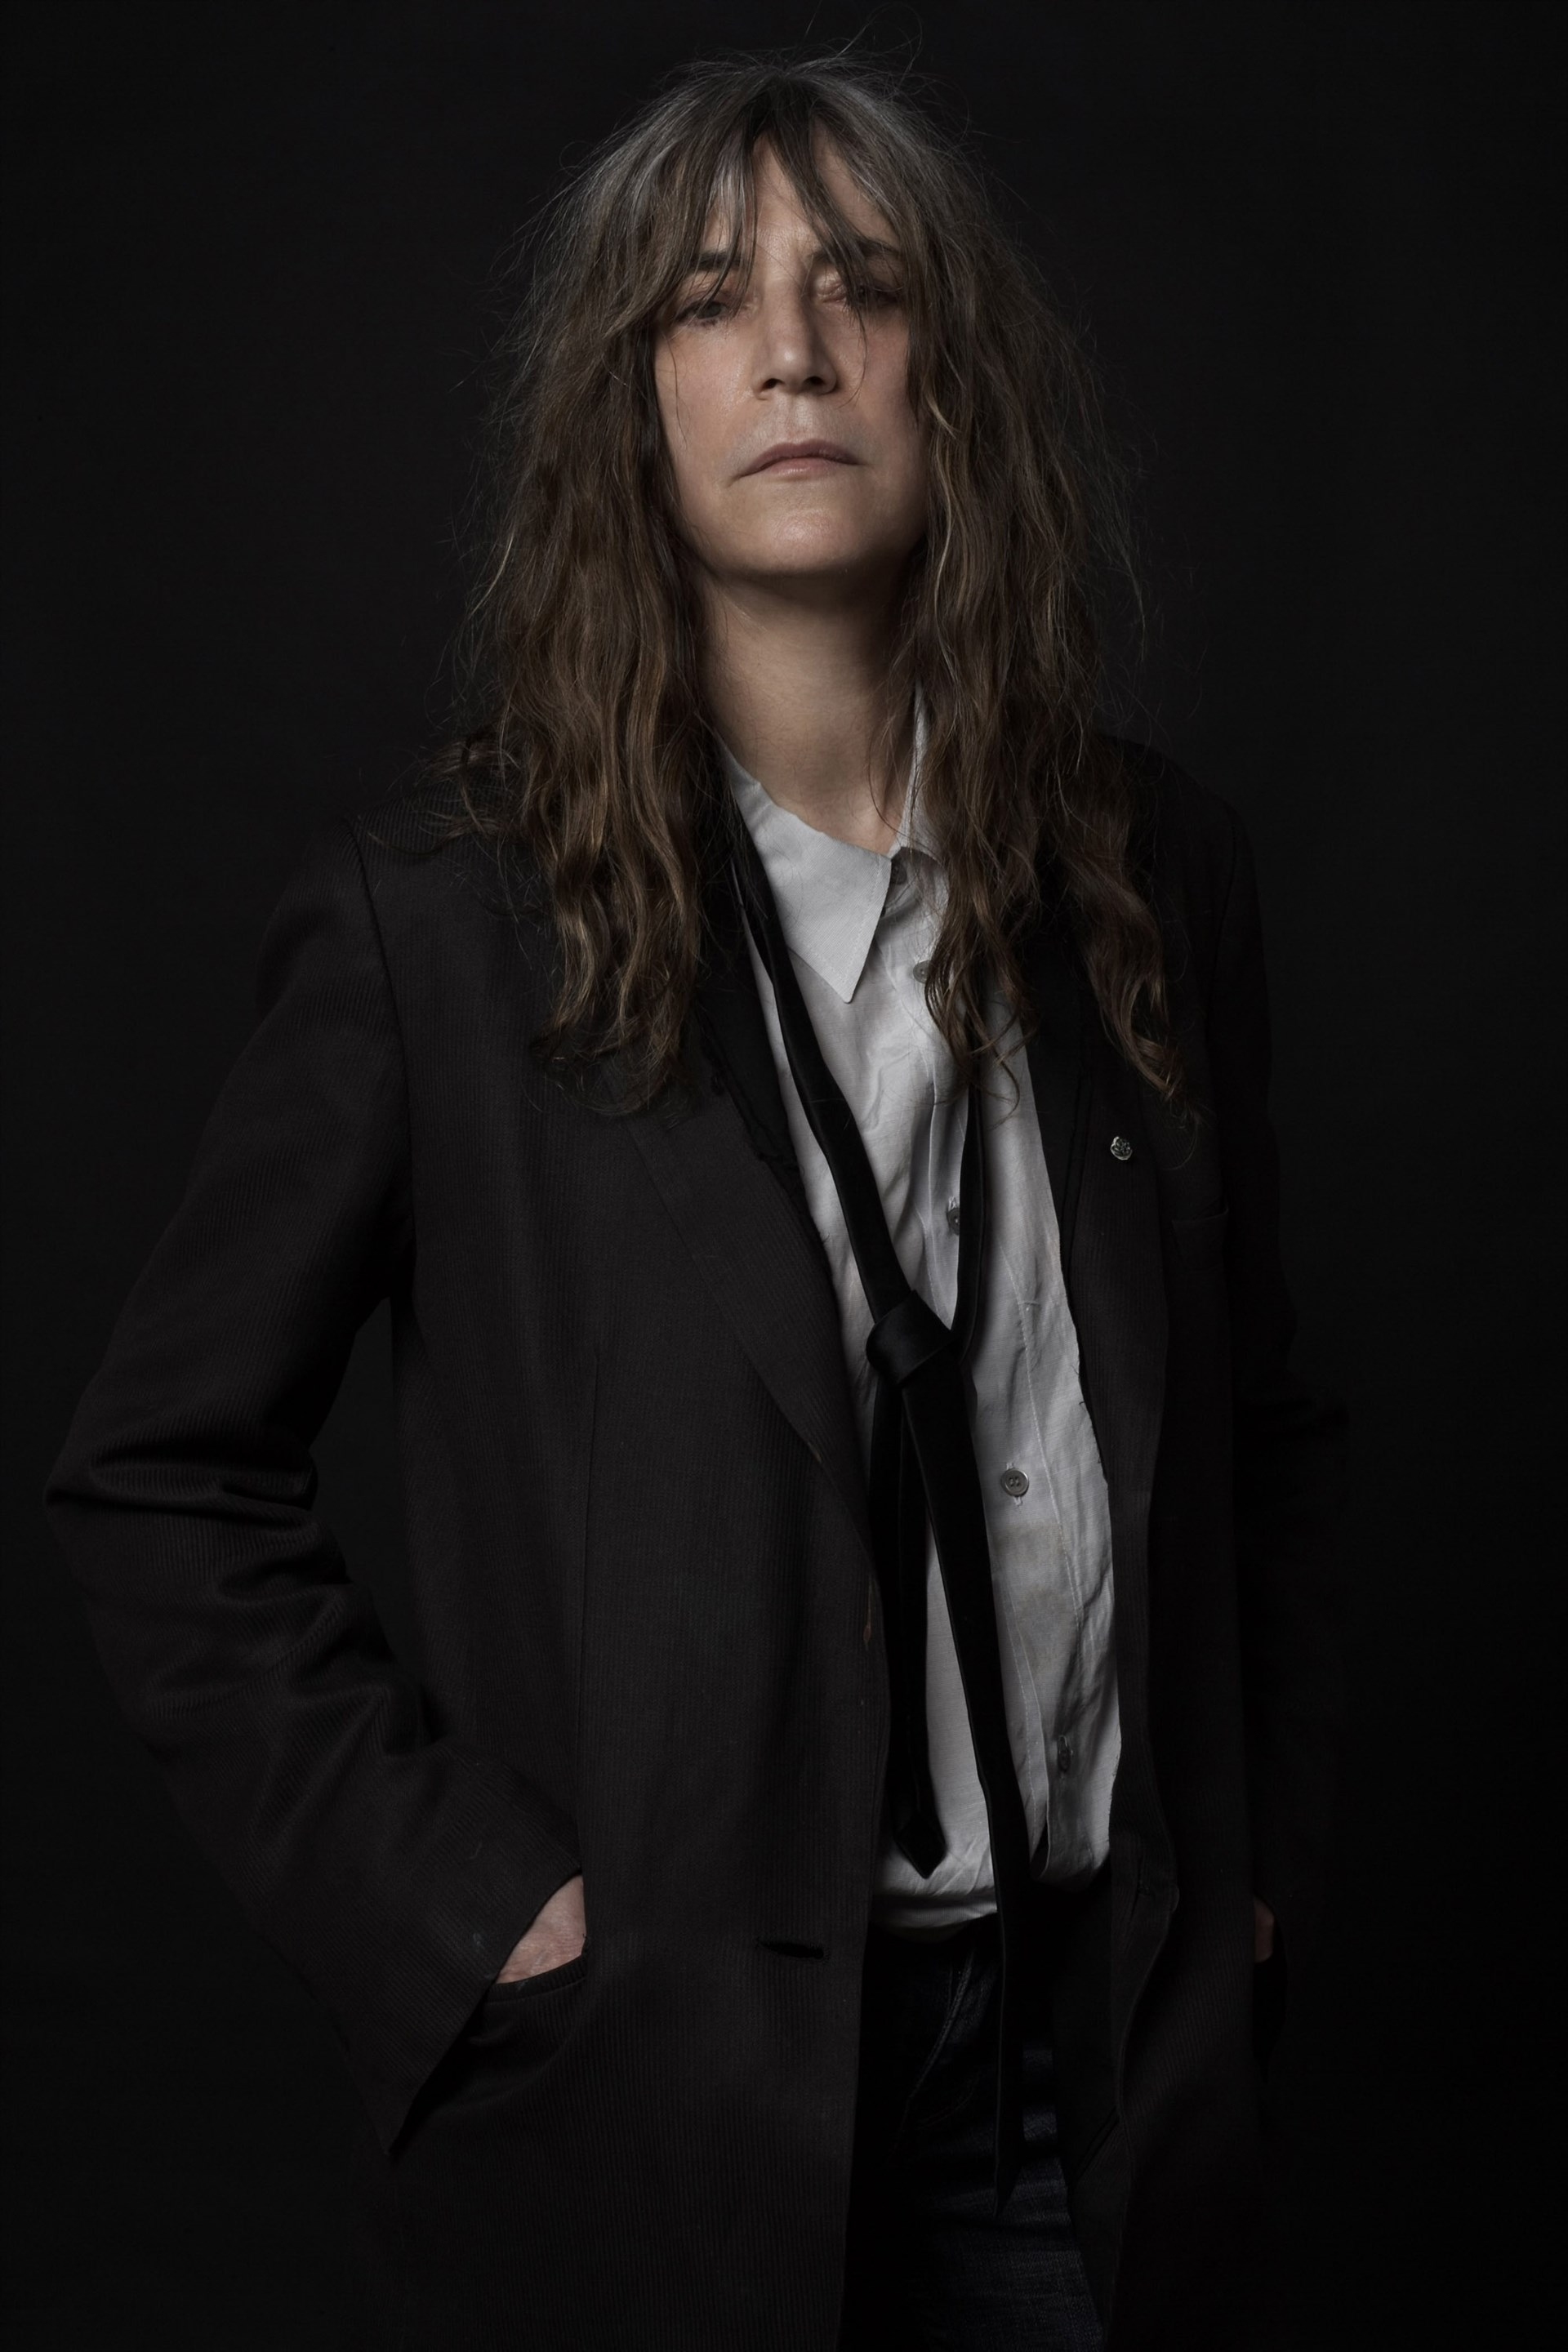 Patti Smith se presentará por primera vez en Chile